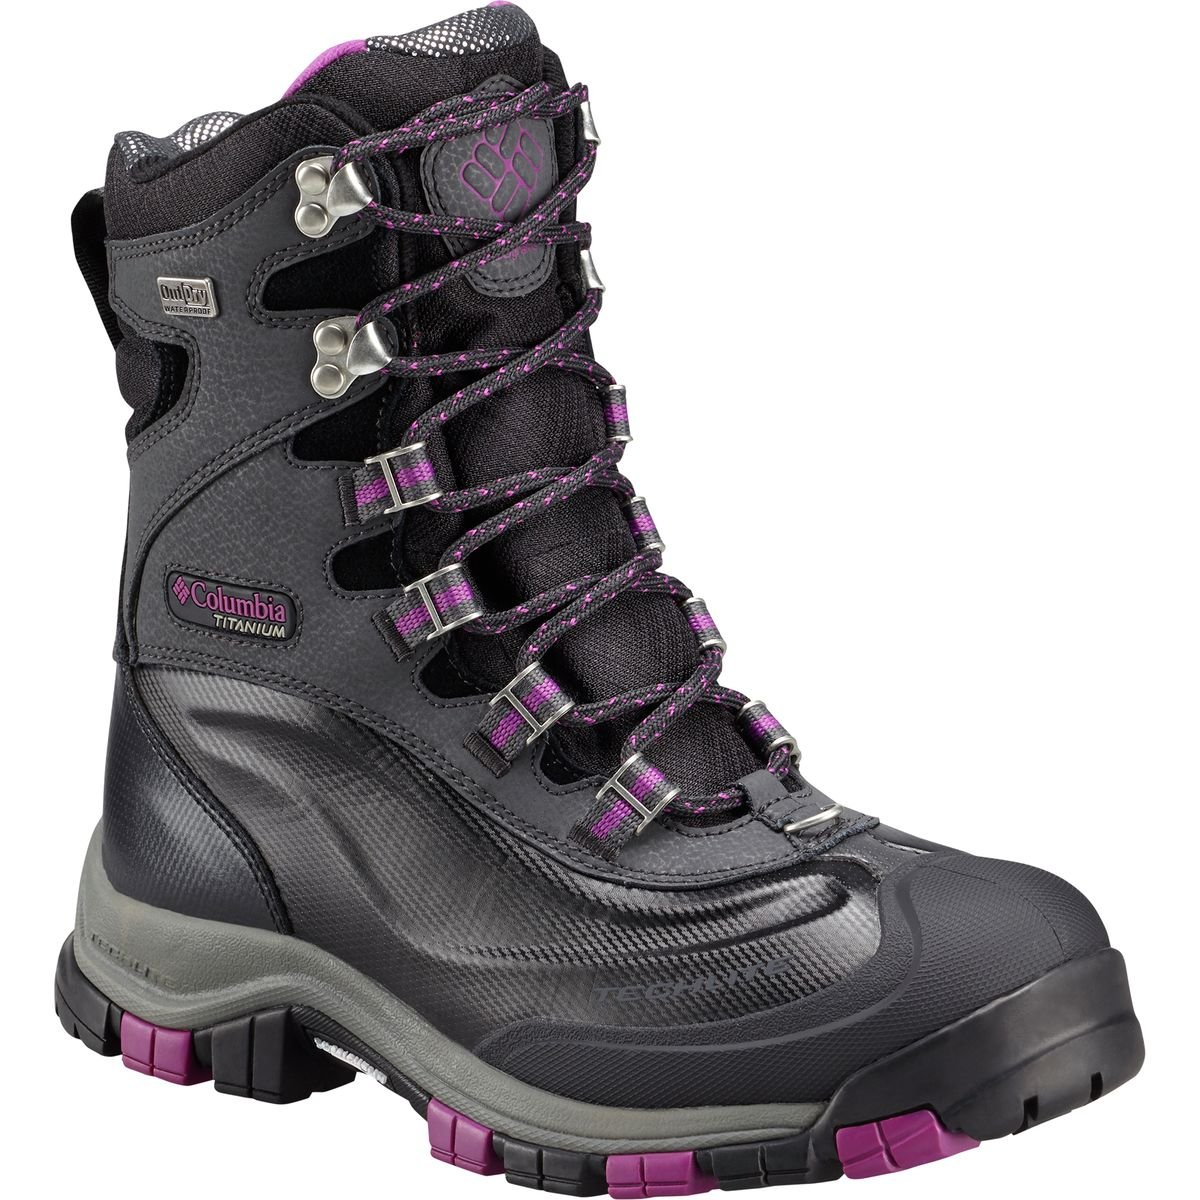 Columbia Women's Bugaboot Plus Titanium Omni-Heat Outdry Waterproof Winter Boot Blk/Violet 7 M US by Columbia